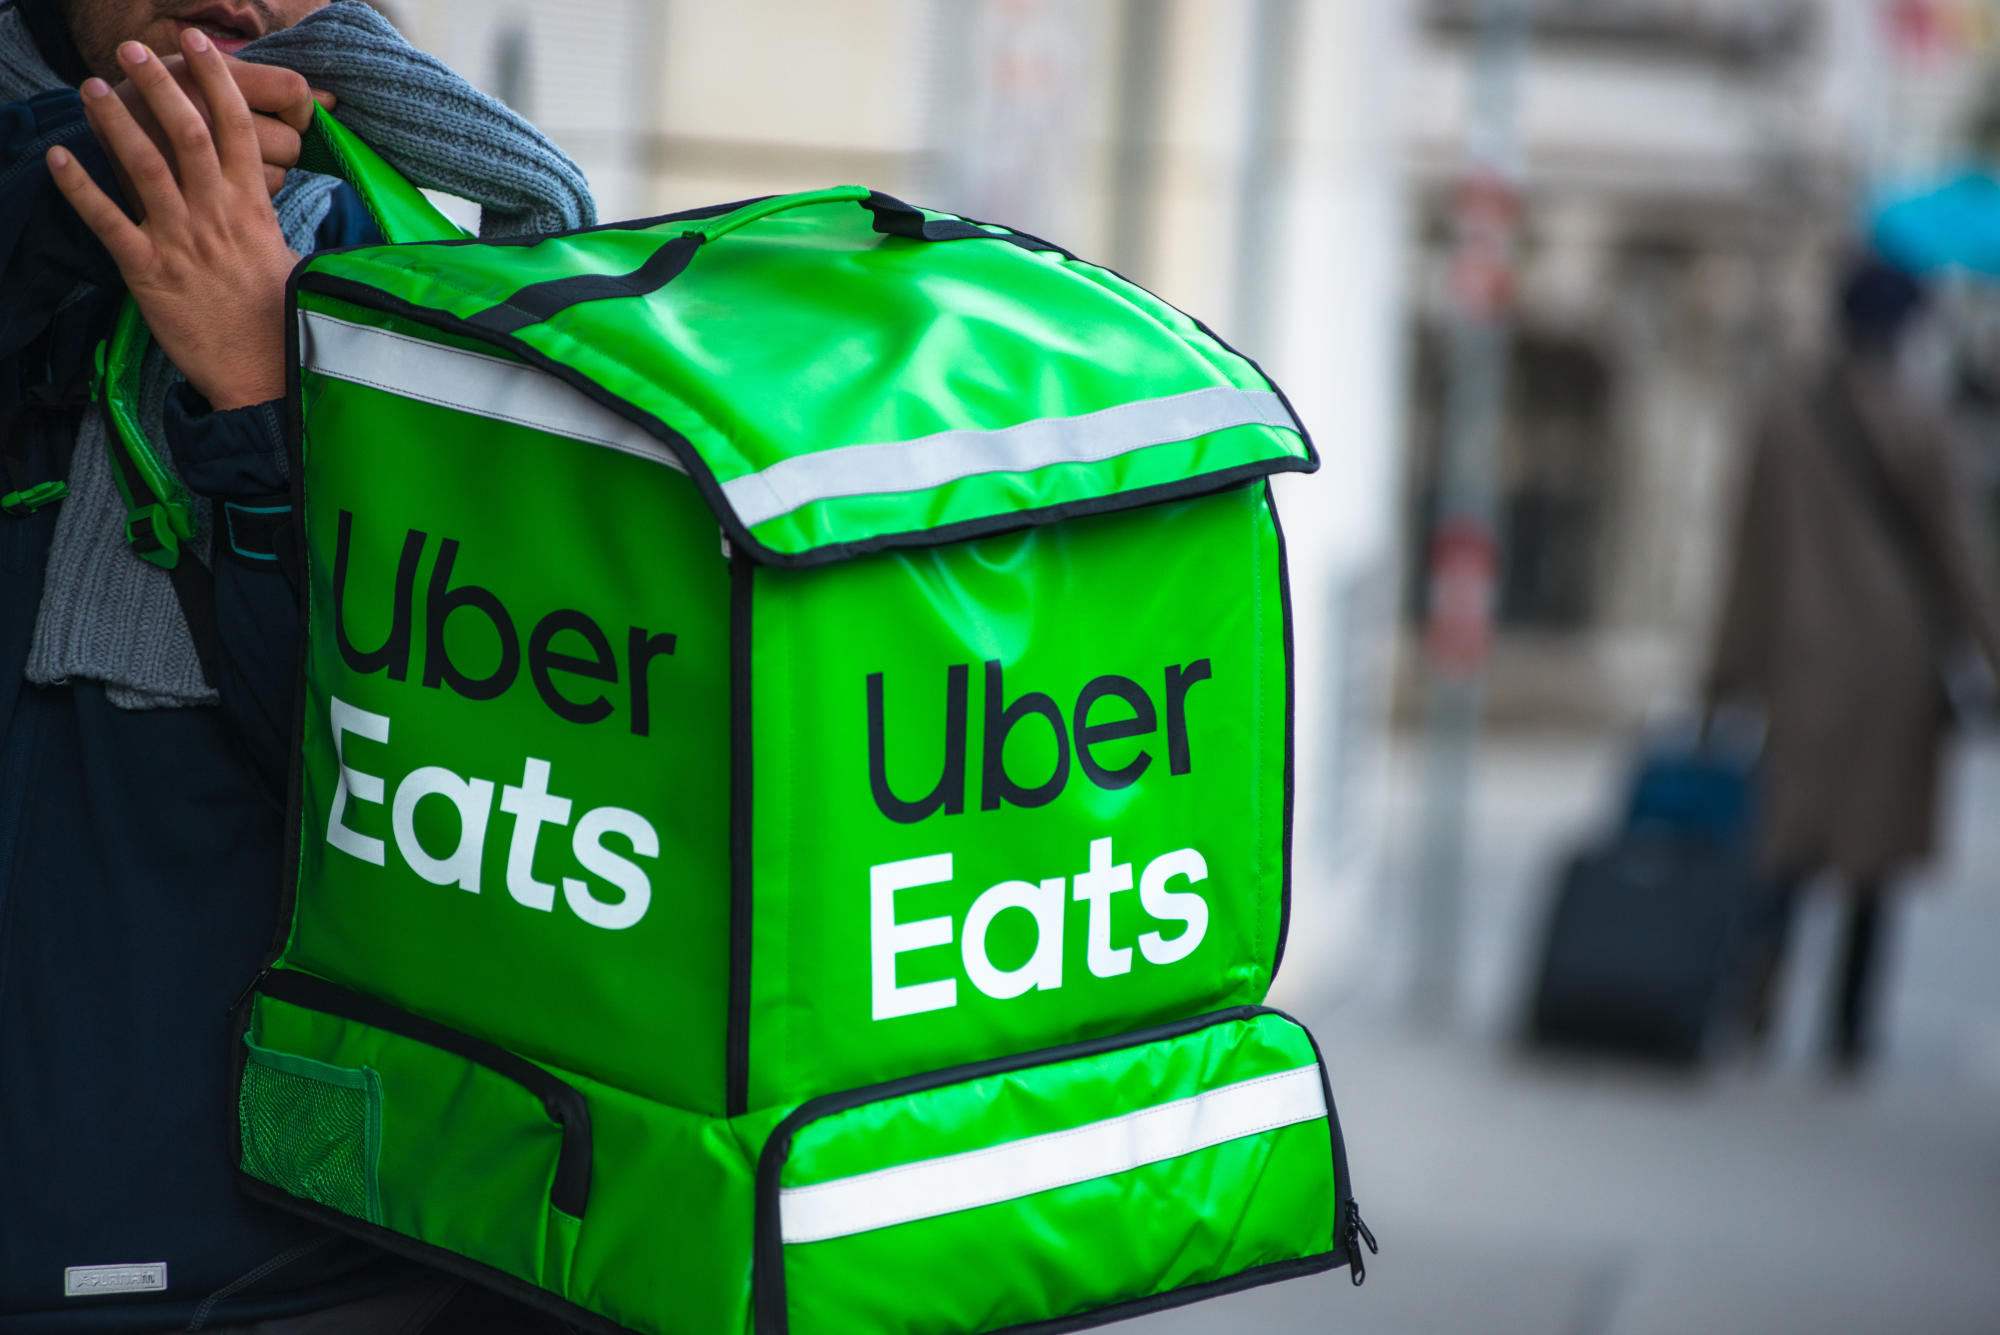 How an unauthorized Uber Eats listing caused chaos for this coffee shop